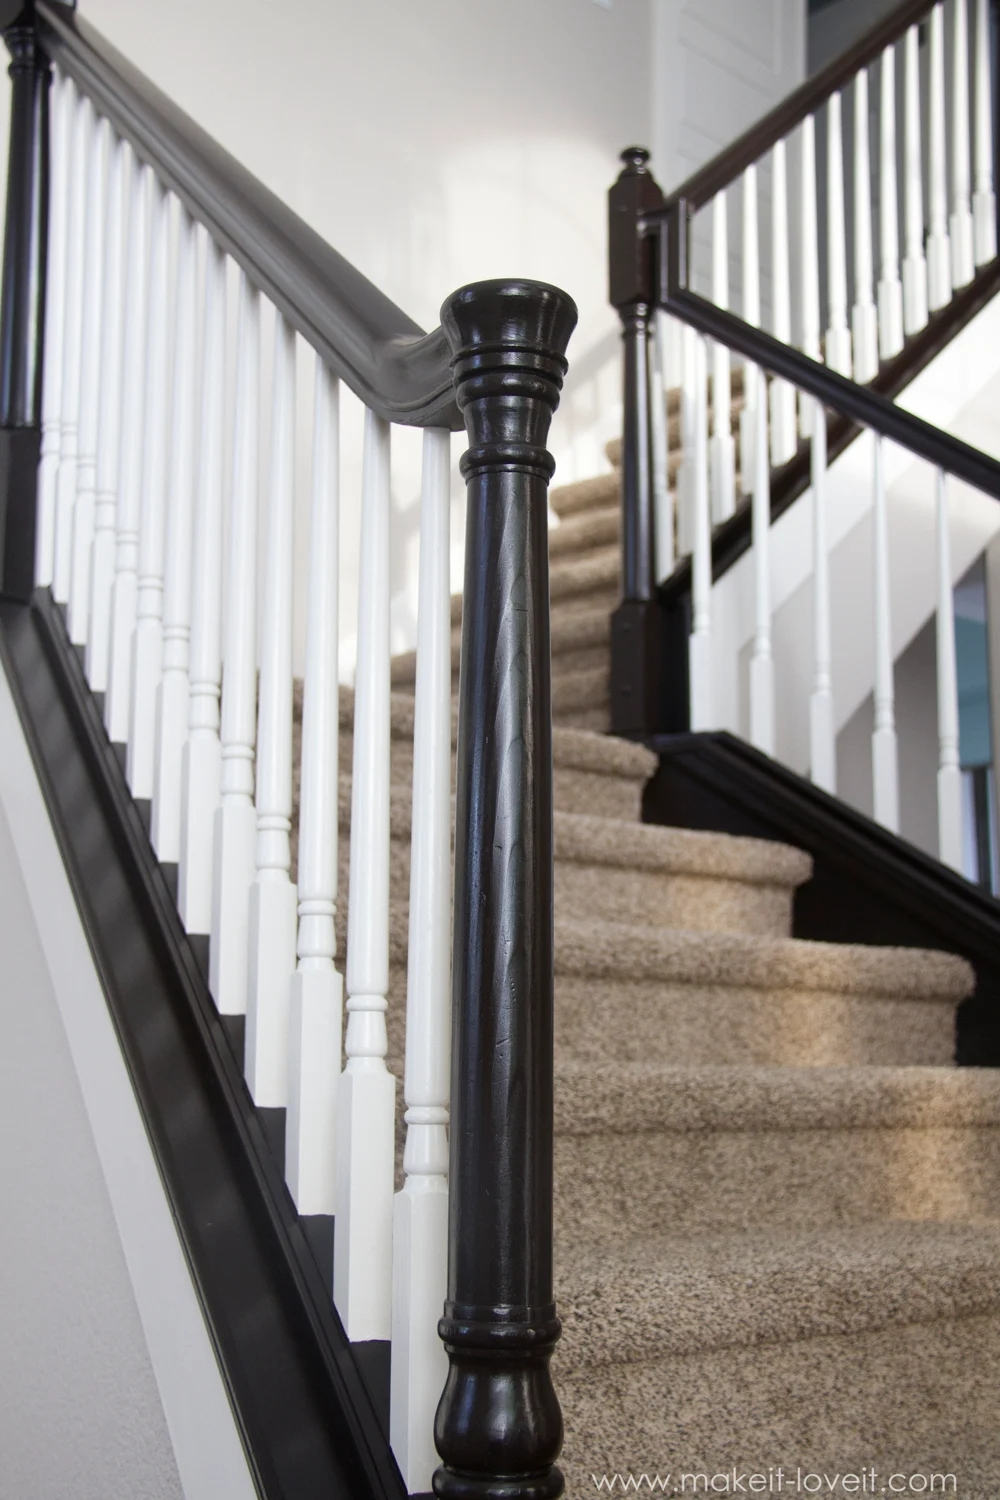 How To Paint Stain Wood Stair Railings Oak Banisters Spindles   Painted Handrails For Stairs   Modern   German Style   House   Pressure Treated   Before And After